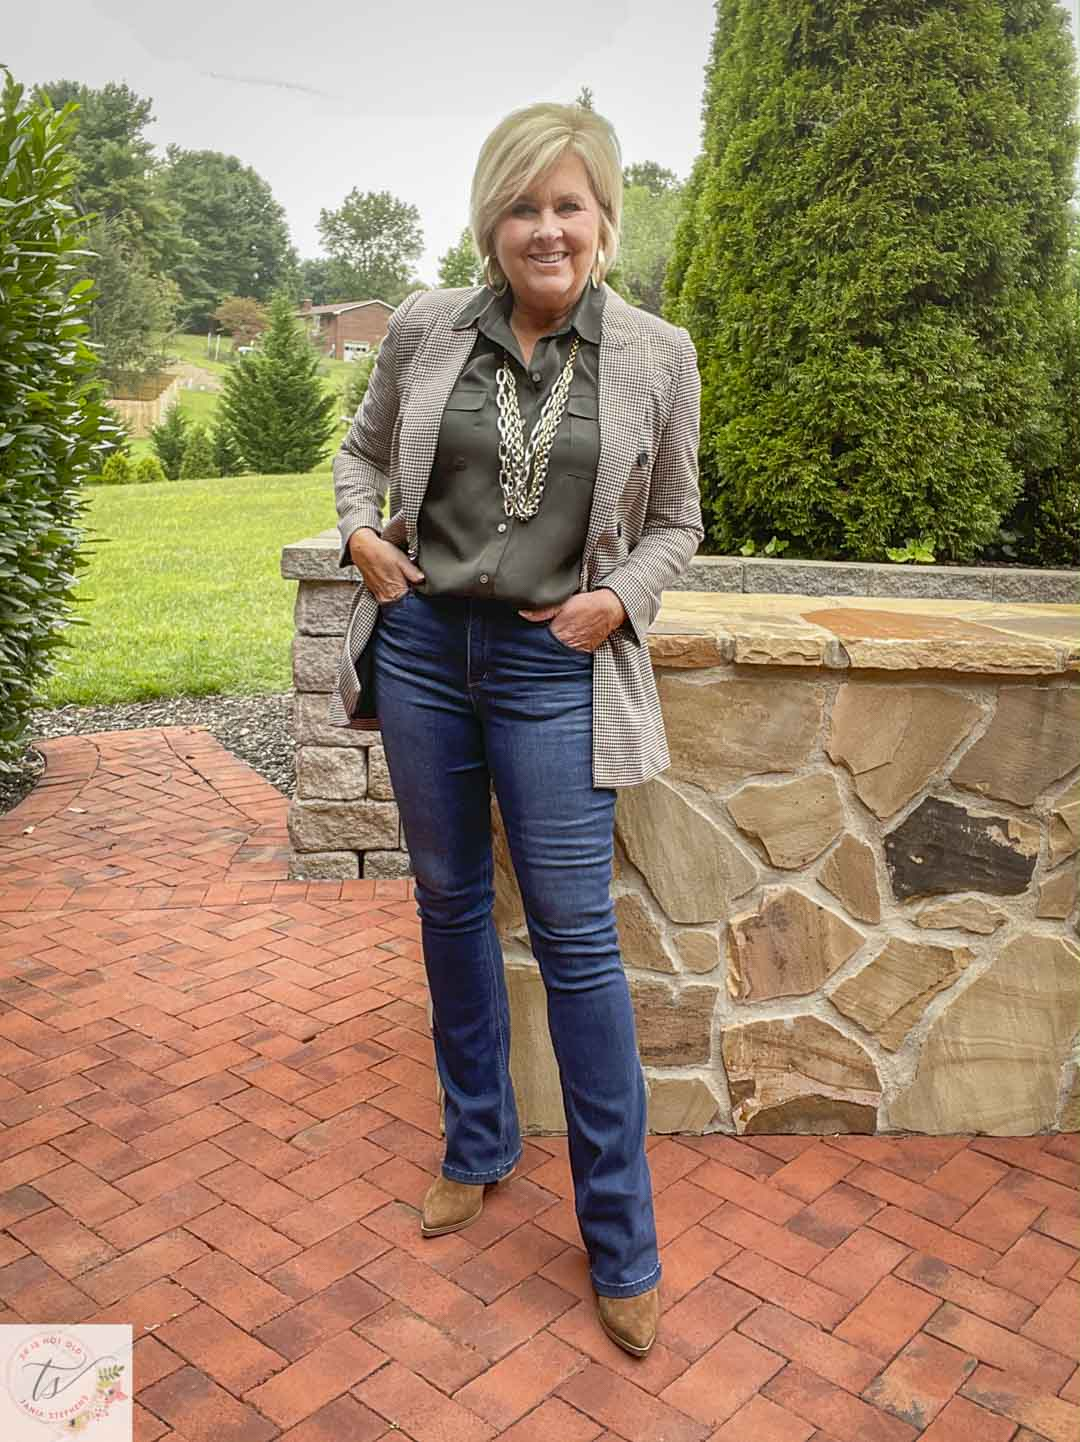 Over 40 Fashion Blogger, Tania Stephens, is wearing a plaid blazer with an olive button-up shirt, slim bootcut jeans, and suede ankle boots